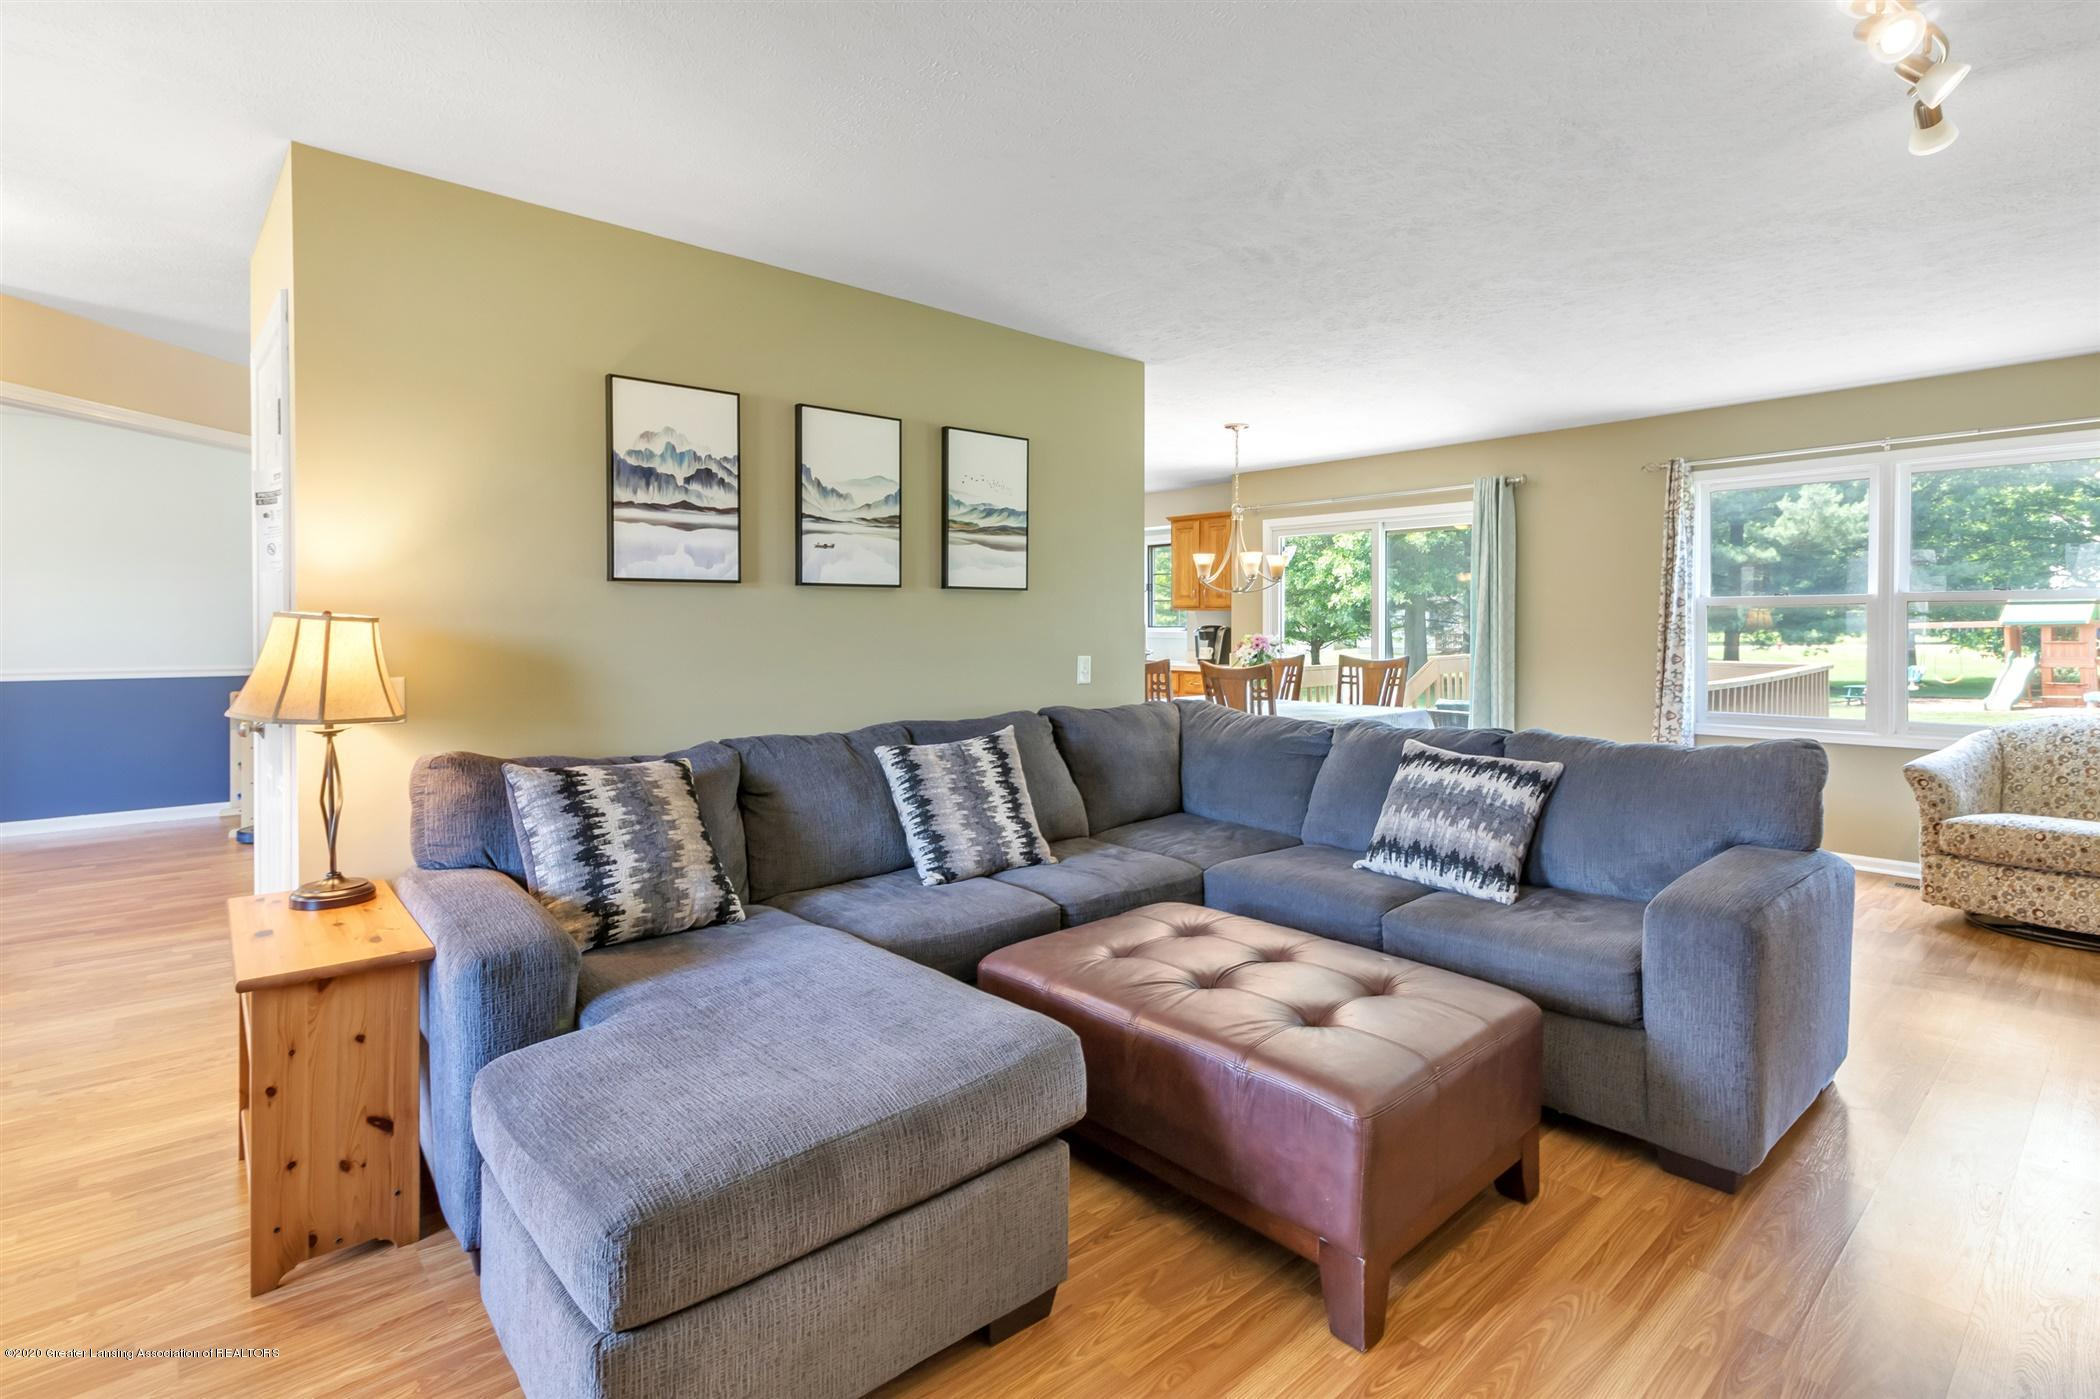 2945 Whistlewood Way - 10-2945Whistlewood-WindowStill-Real - 10